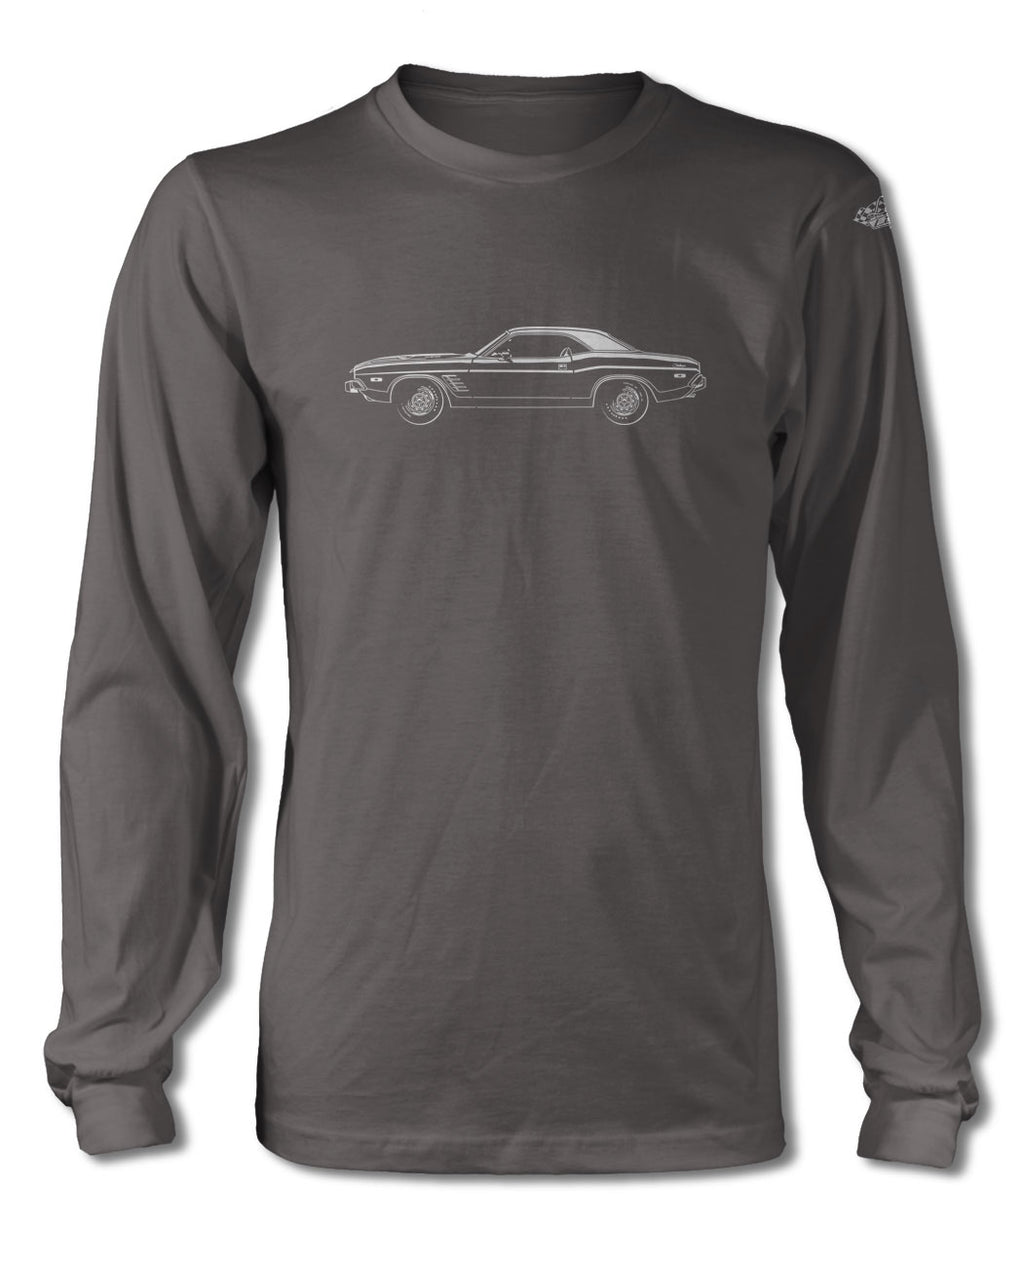 1974 Dodge Challenger Rallye Hardtop T-Shirt - Long Sleeves - Side View